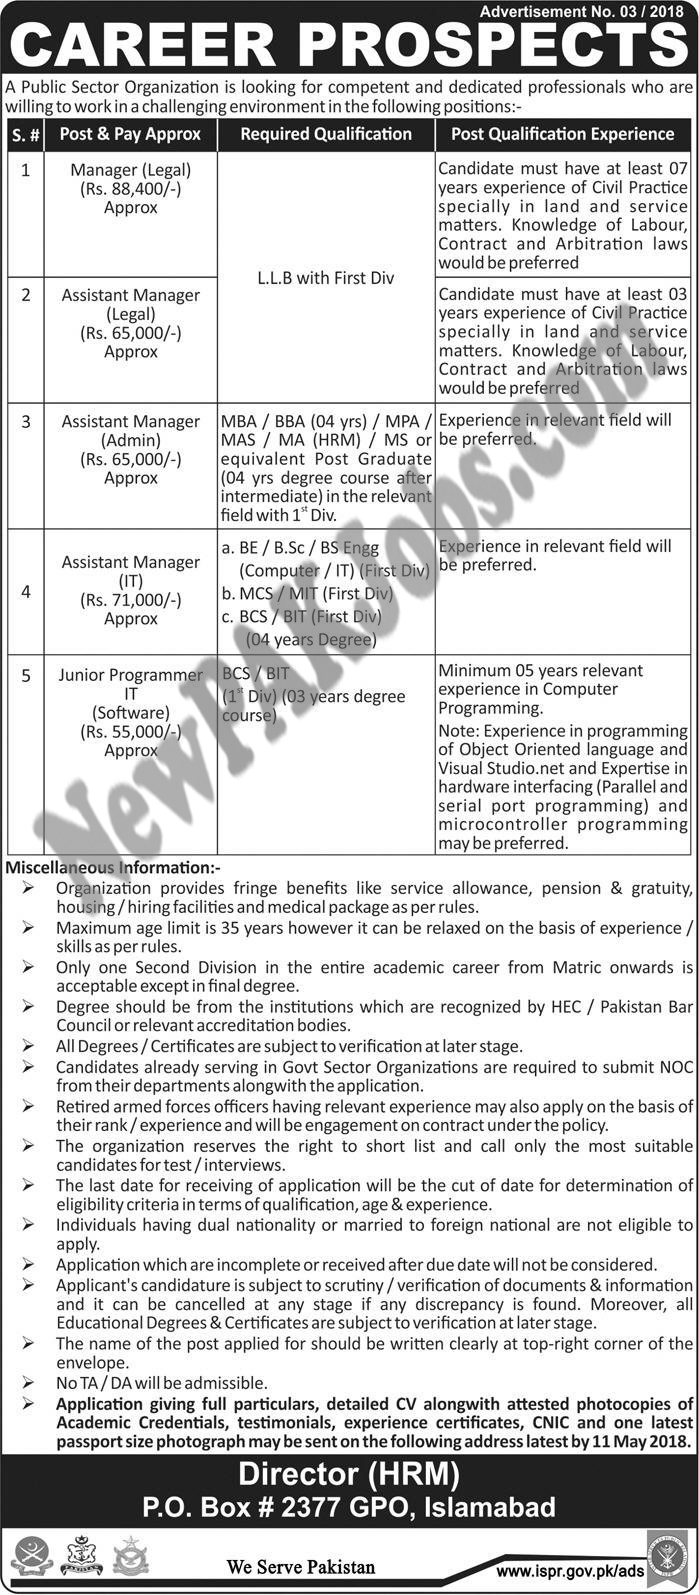 Public Sector Organization Islamabad New Latest Jobs